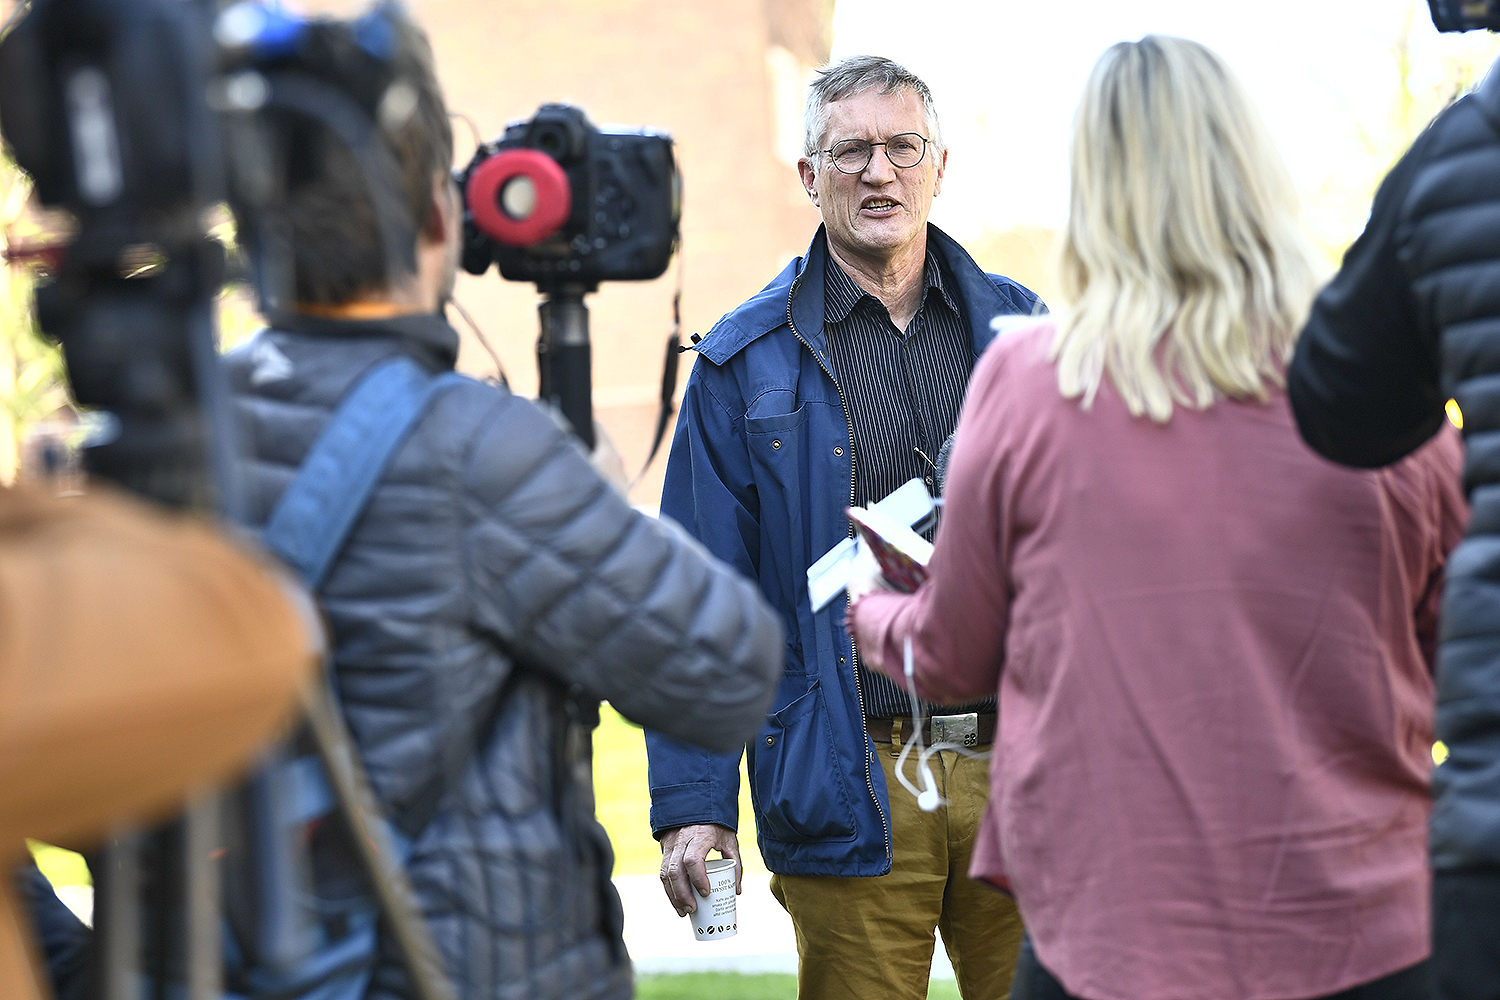 State epidemiologist Anders Tegnell of the Public Health Agency of Sweden talks to reporters after a news conference in Stockholm on May 6.